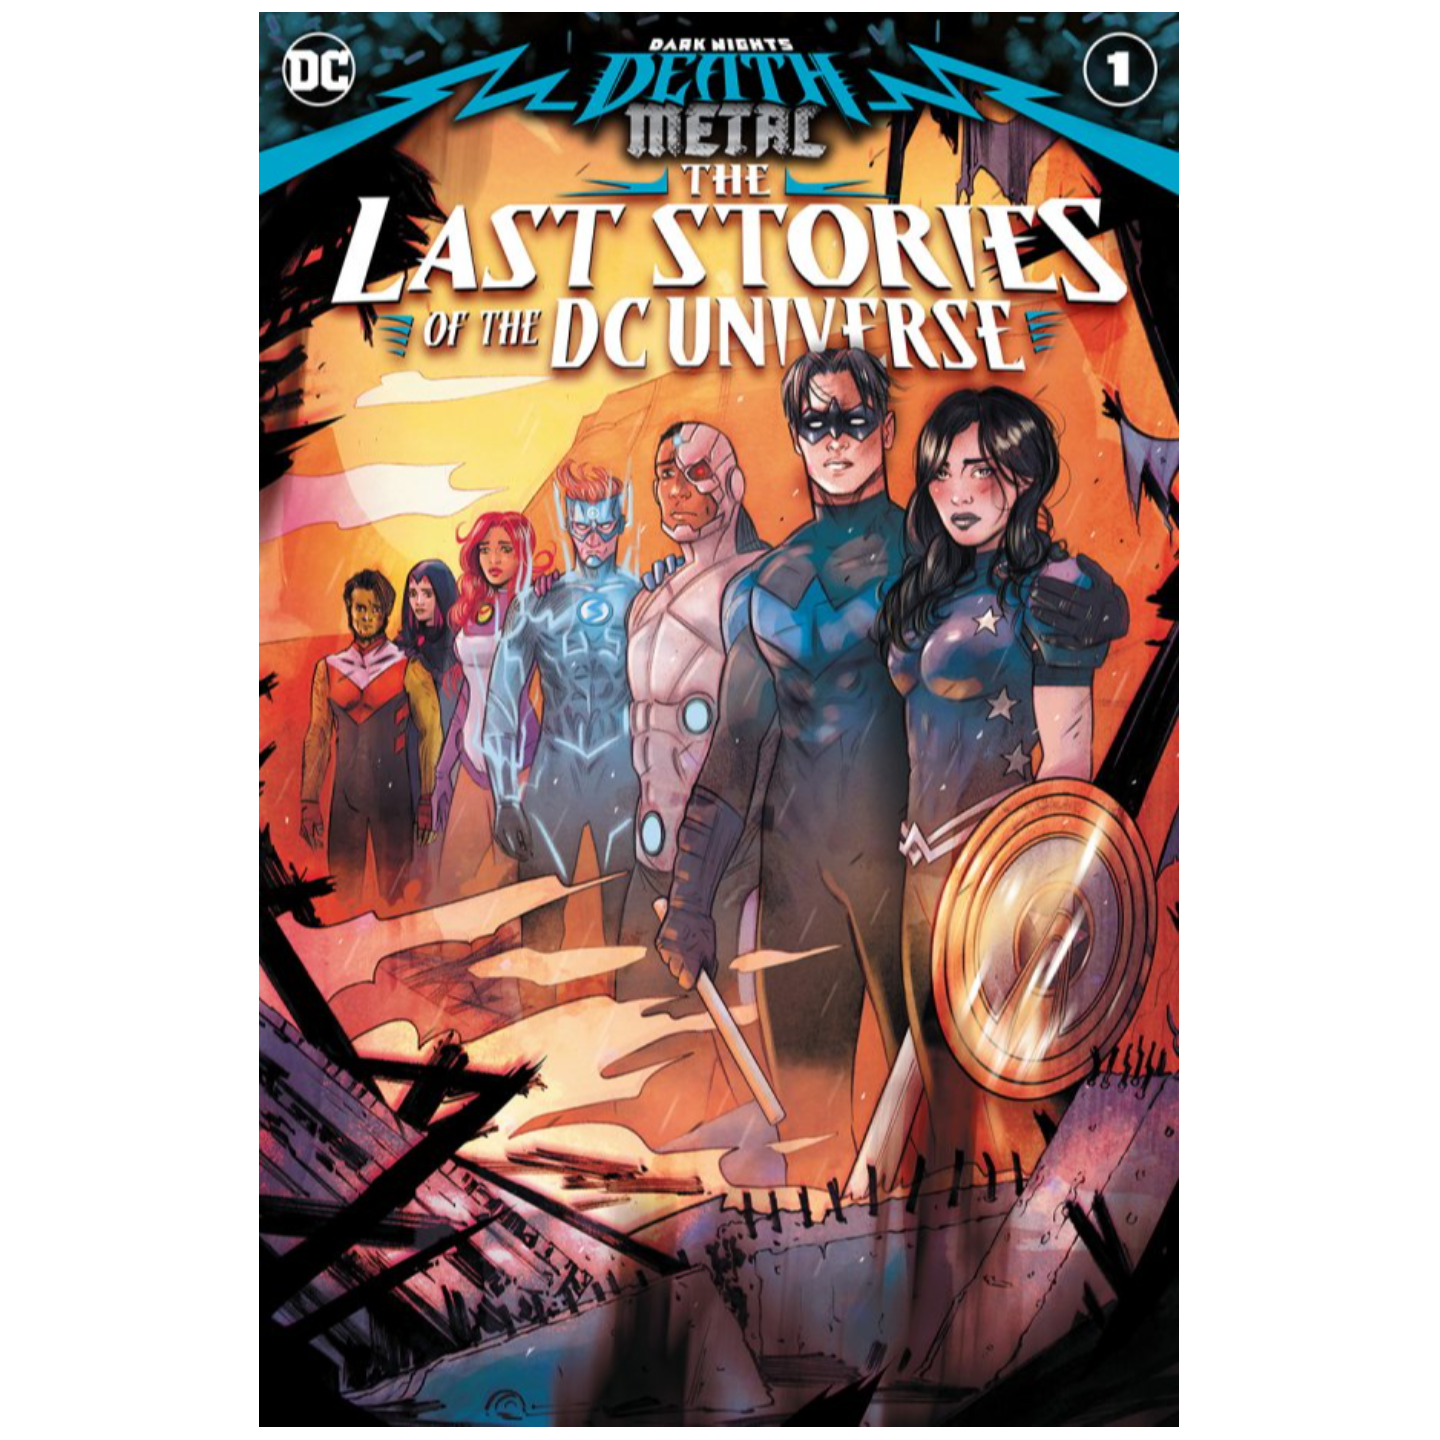 DARK NIGHTS DEATH METAL THE LAST STORIES OF THE DC UNIVERSE #1 (ONE SHOT) CVR A TULA LOTAY